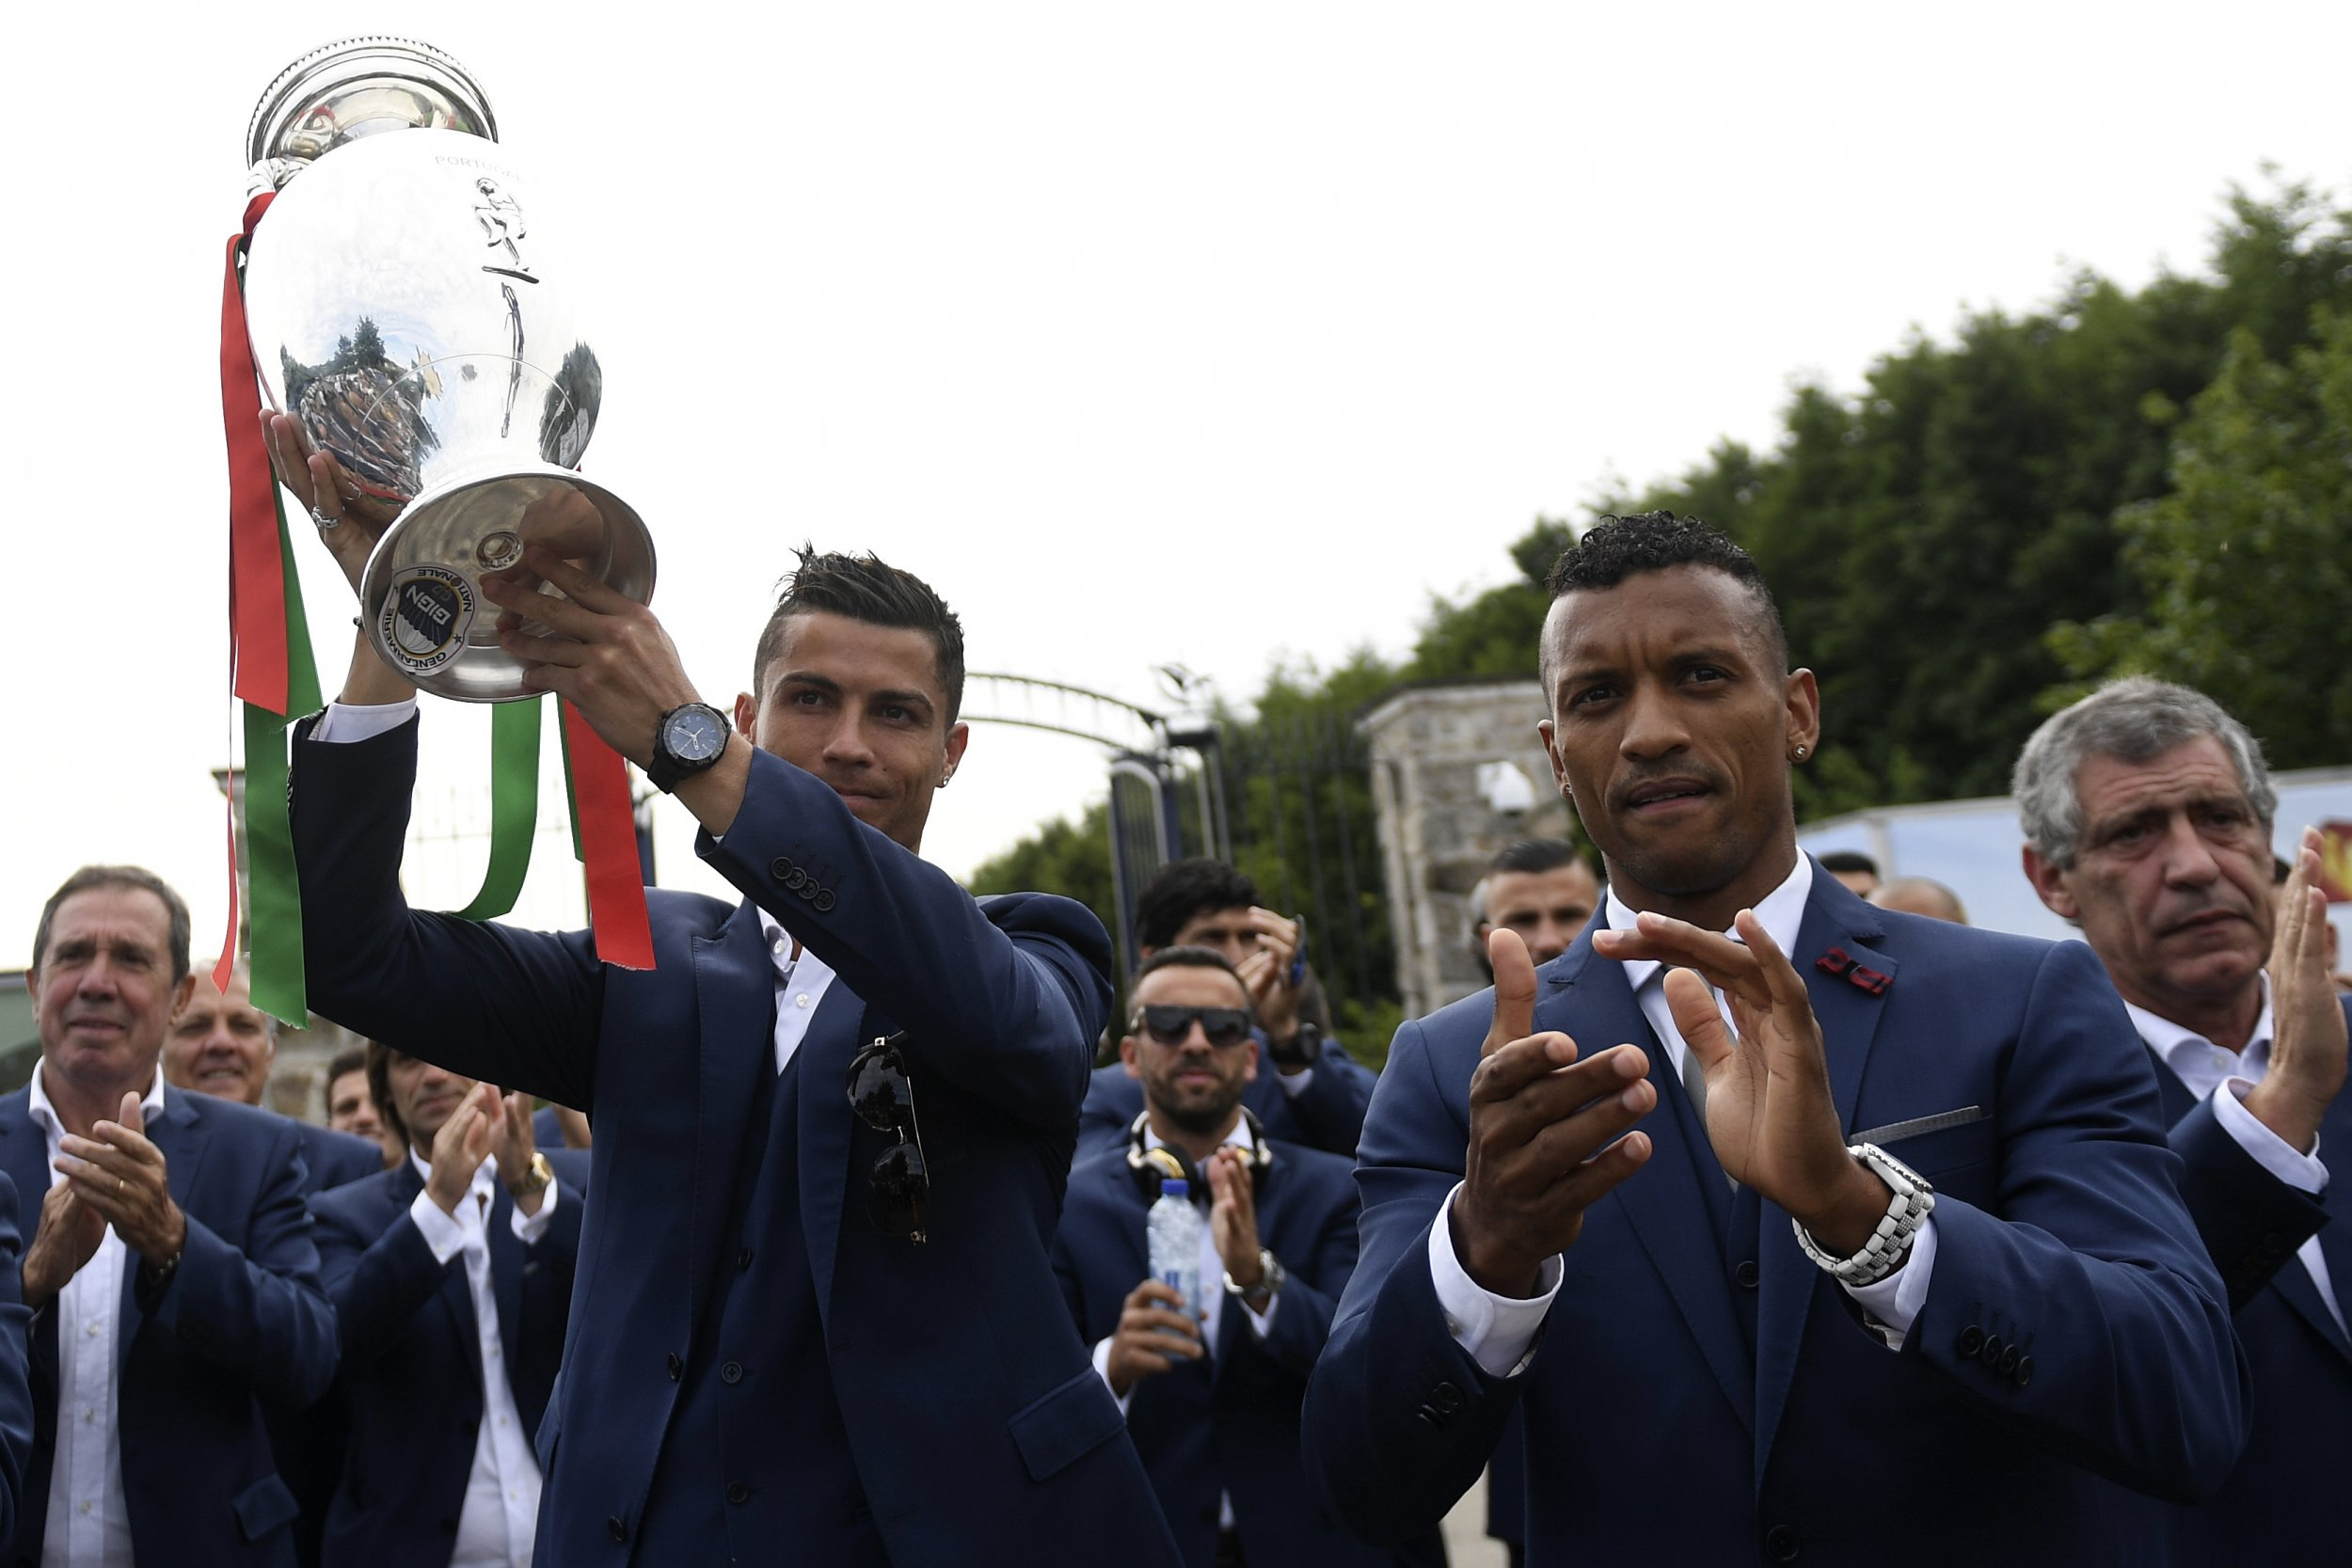 Cristiano Ronaldo, left, with the Euro 2016 trophy.